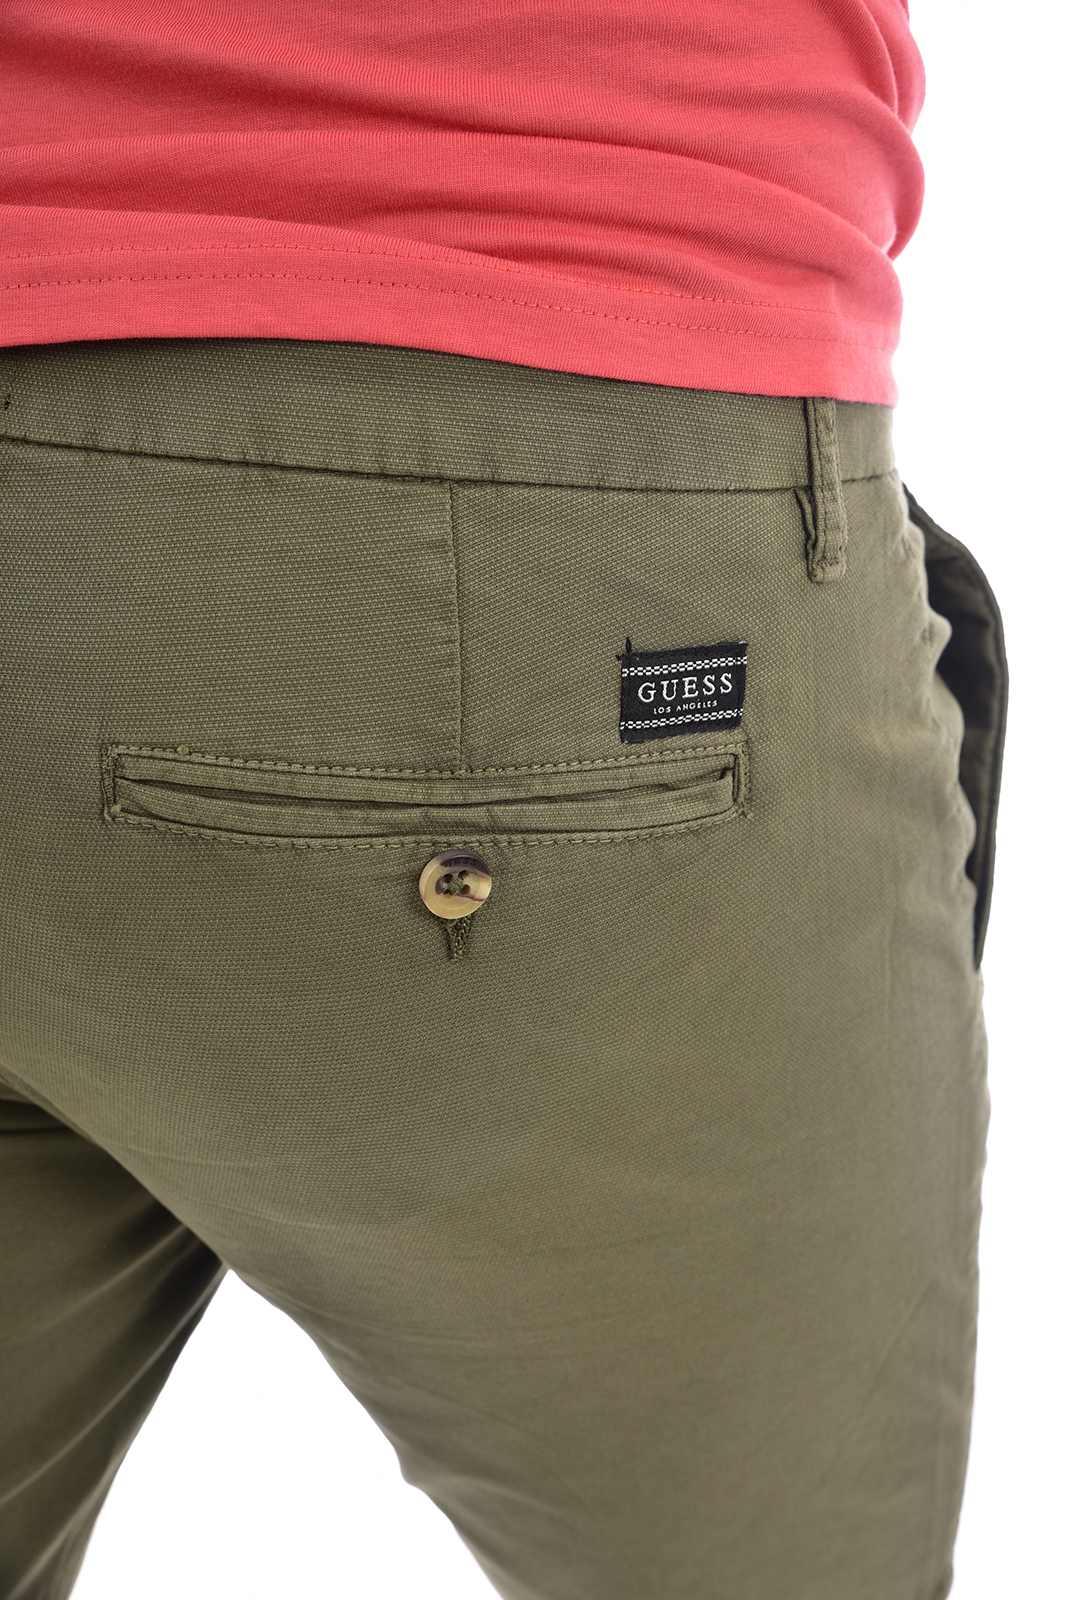 Homme  Guess jeans M02D05 WCRK1 G896 ARMY OLIVE